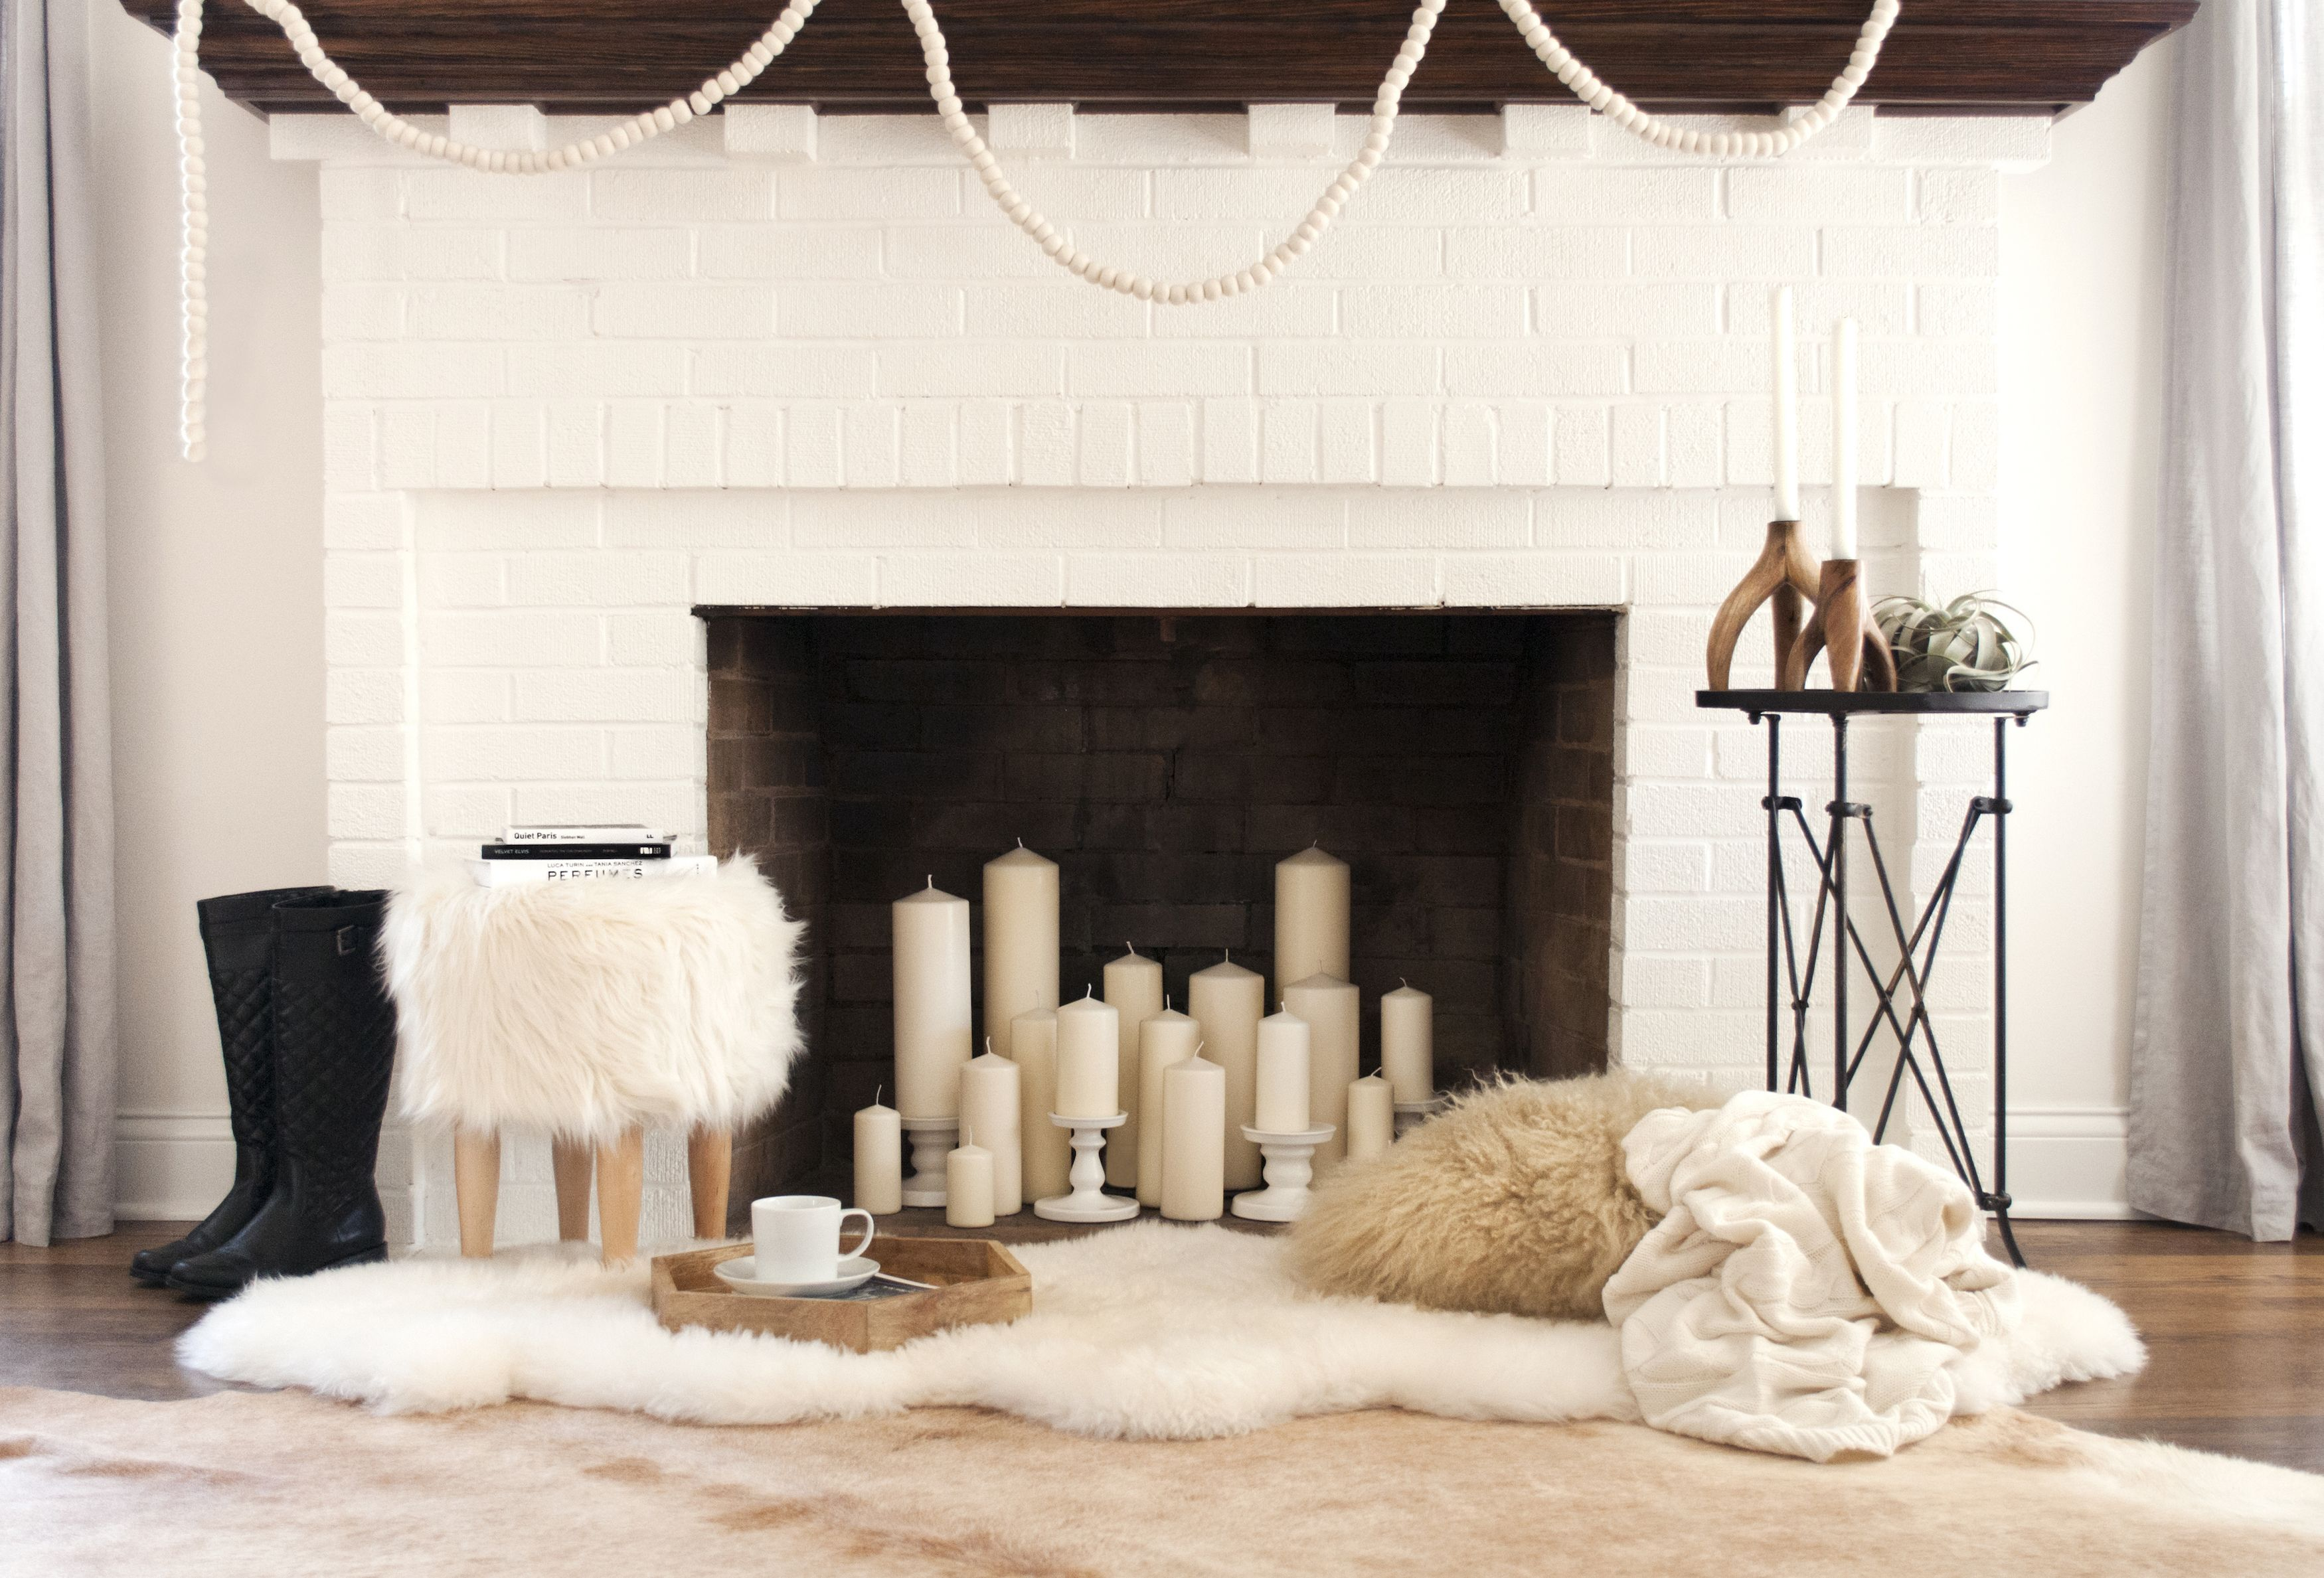 Decorations For Fireplaces 12 Decorating Ideas For Nonworking Fireplace Design Living Room